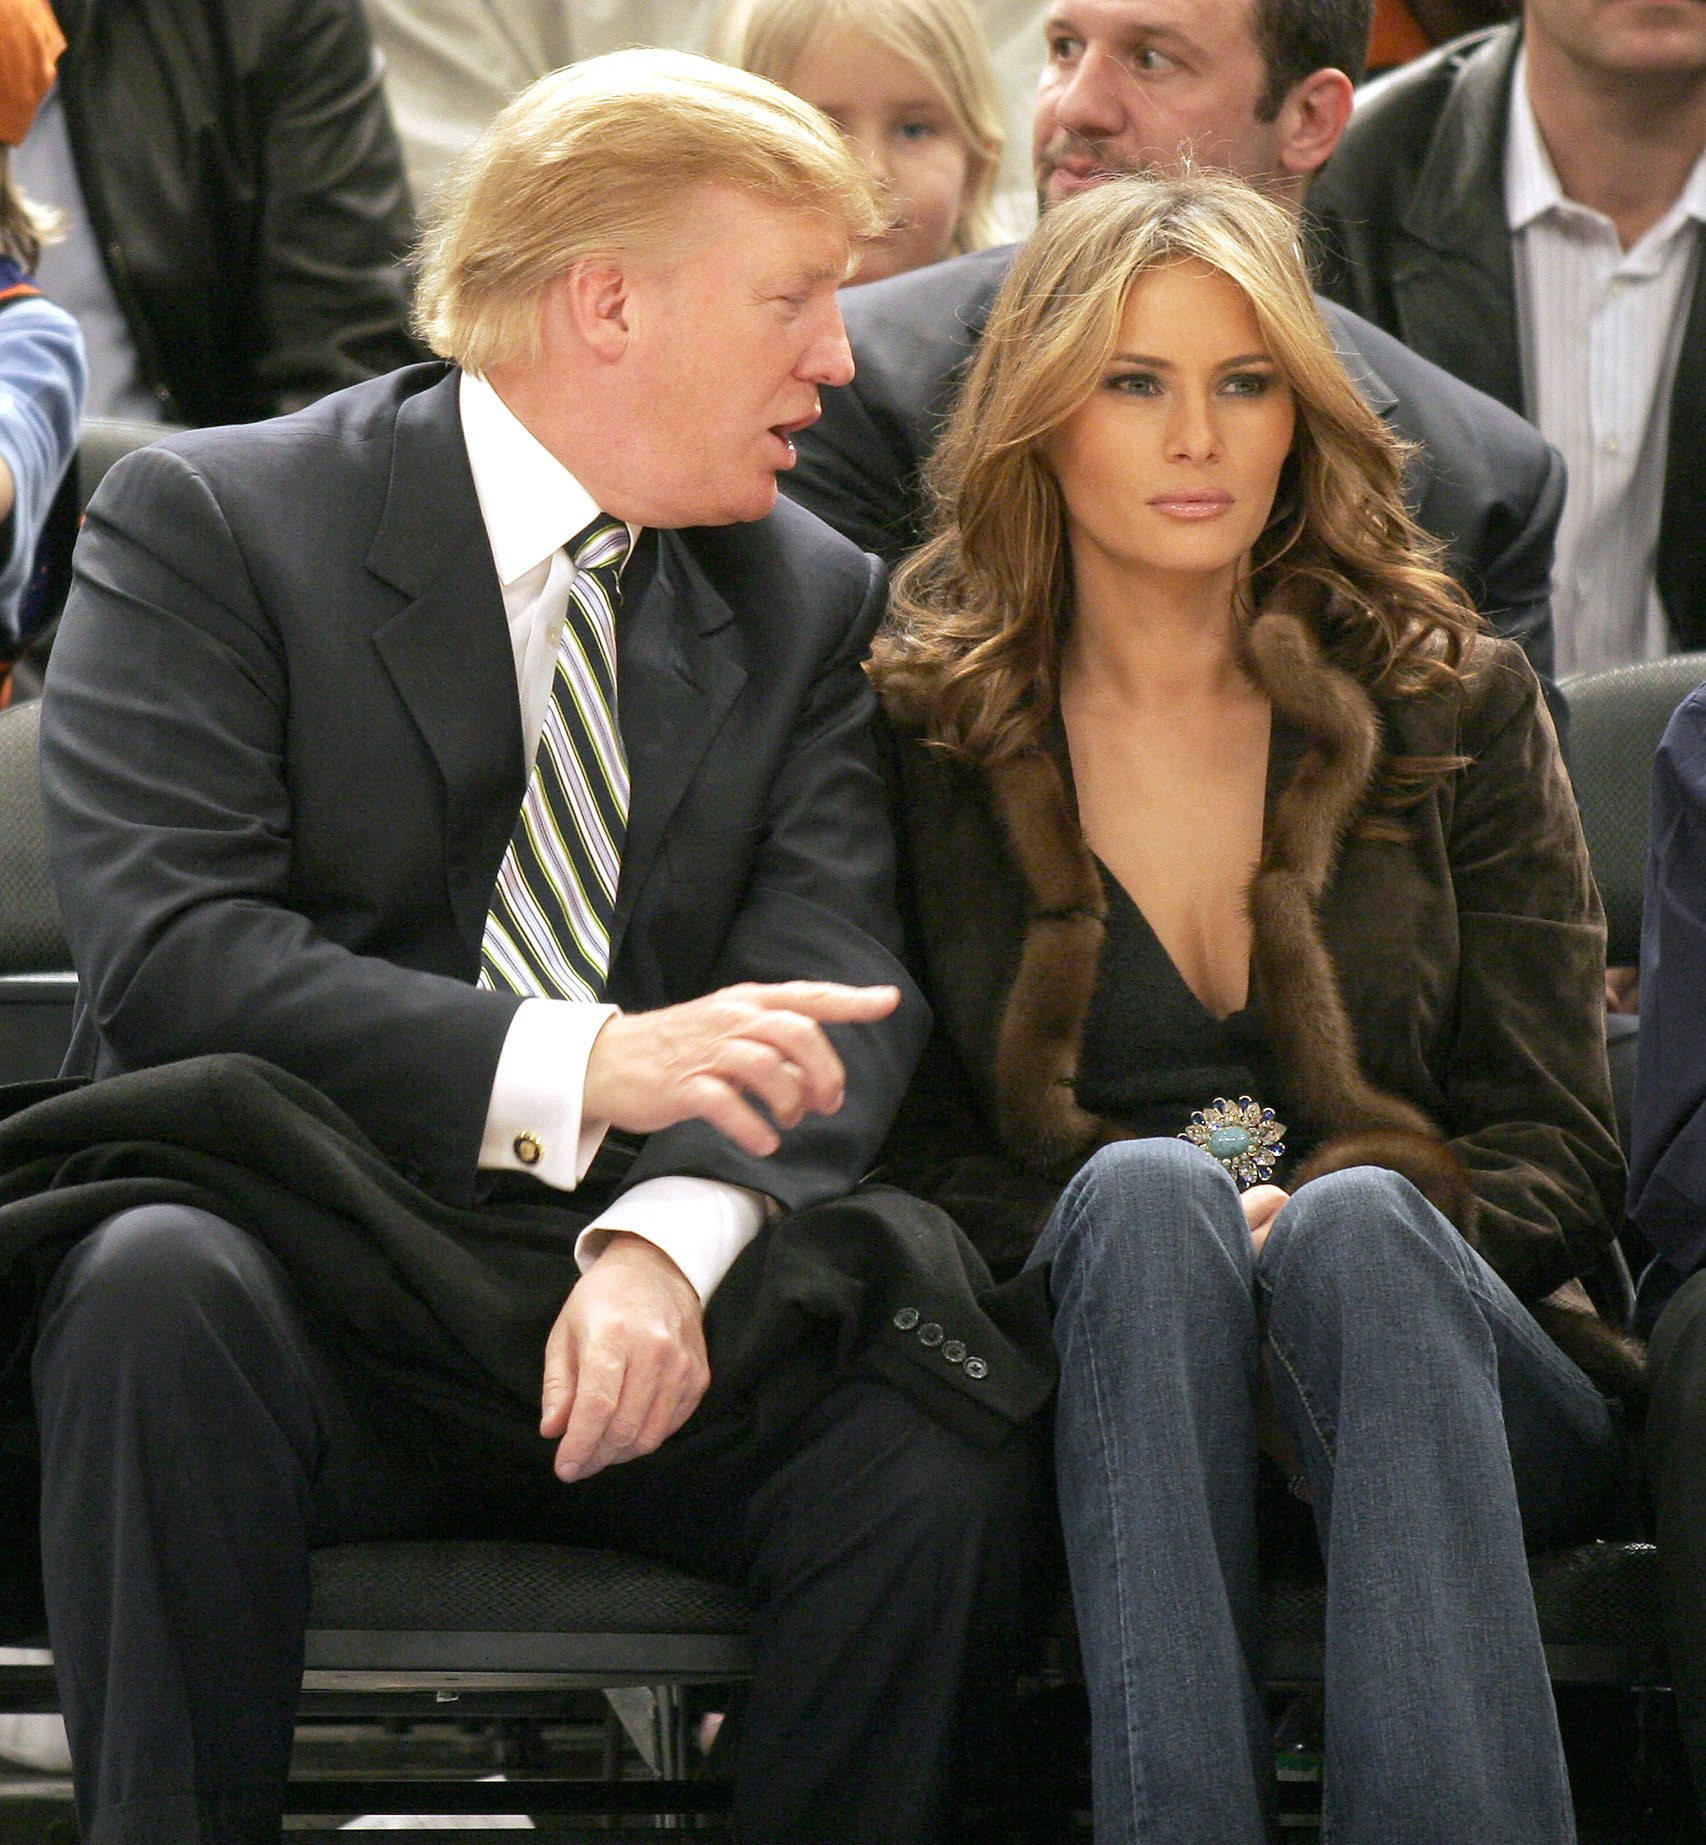 Donald and Melania Trump attend a New York Knicks vs. Miami Heat basketball game. (Photo credit: Splash News)